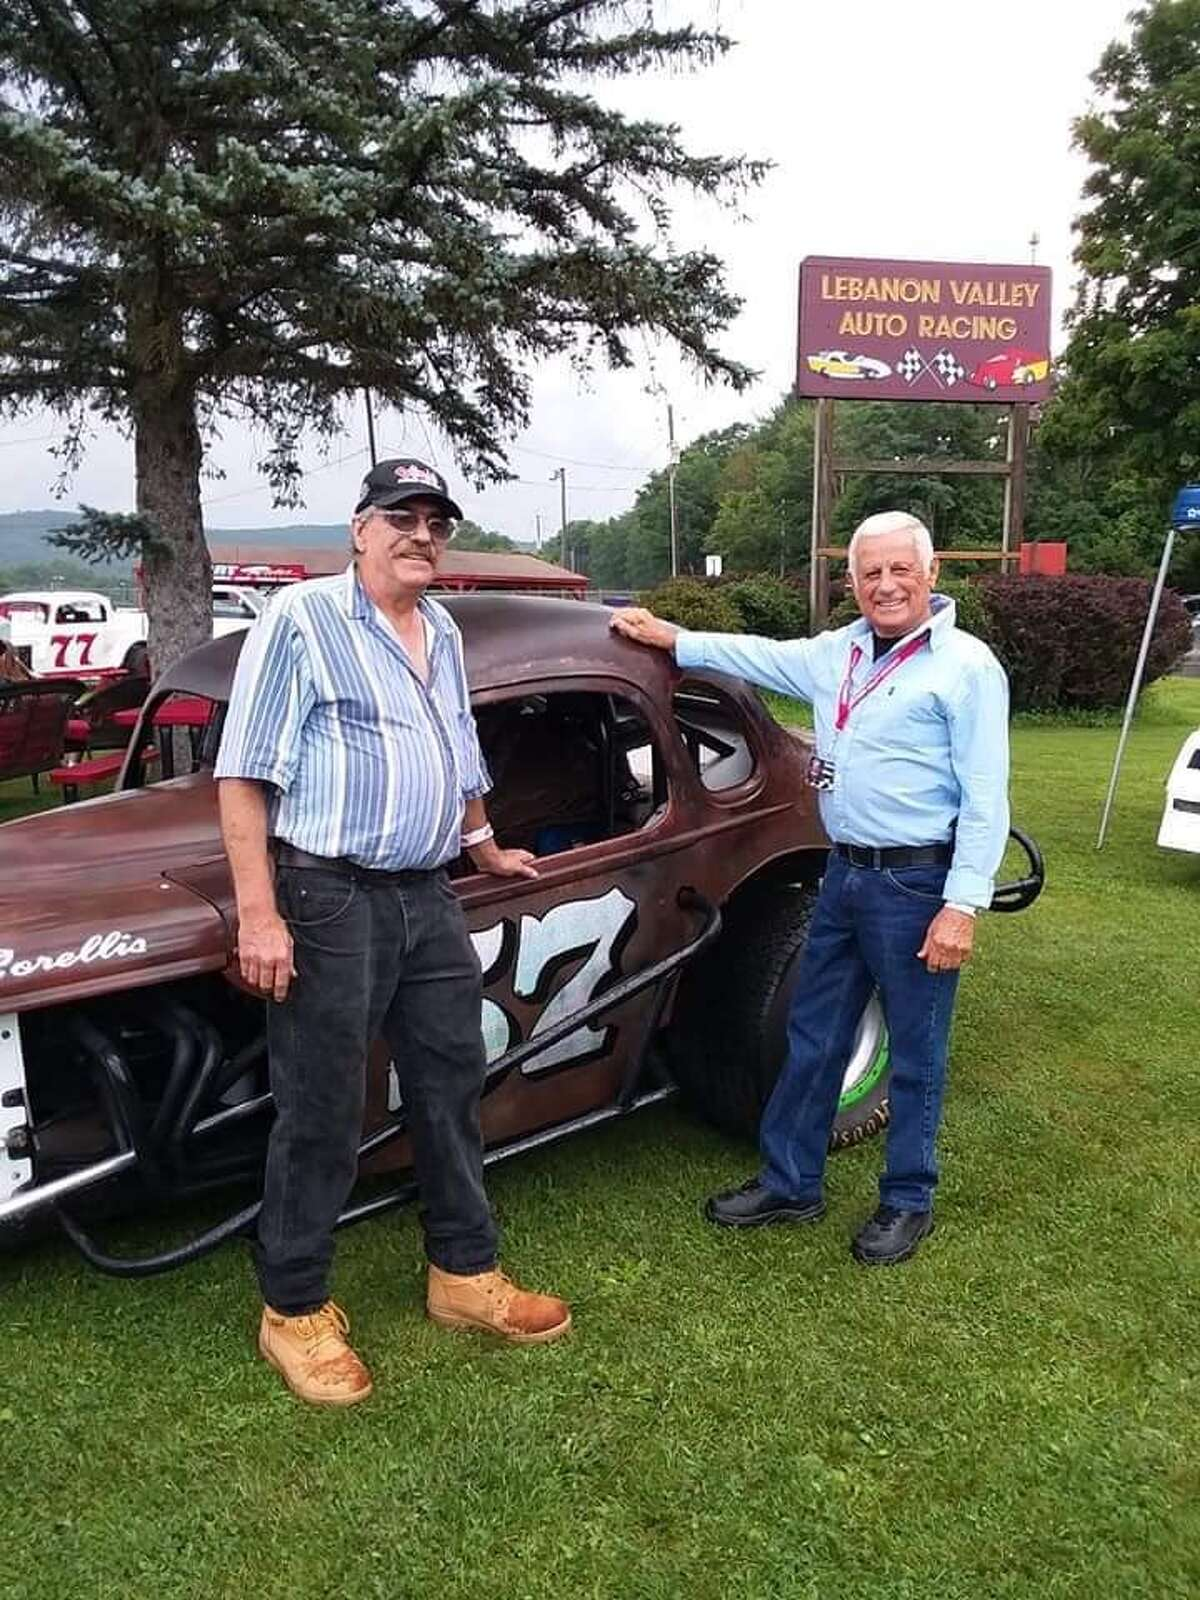 Tommy Corellis, right, and car owner Carl Cram at the 'Legends of Lebanon Valley' event. (Courtesy of Lebanon Valley)